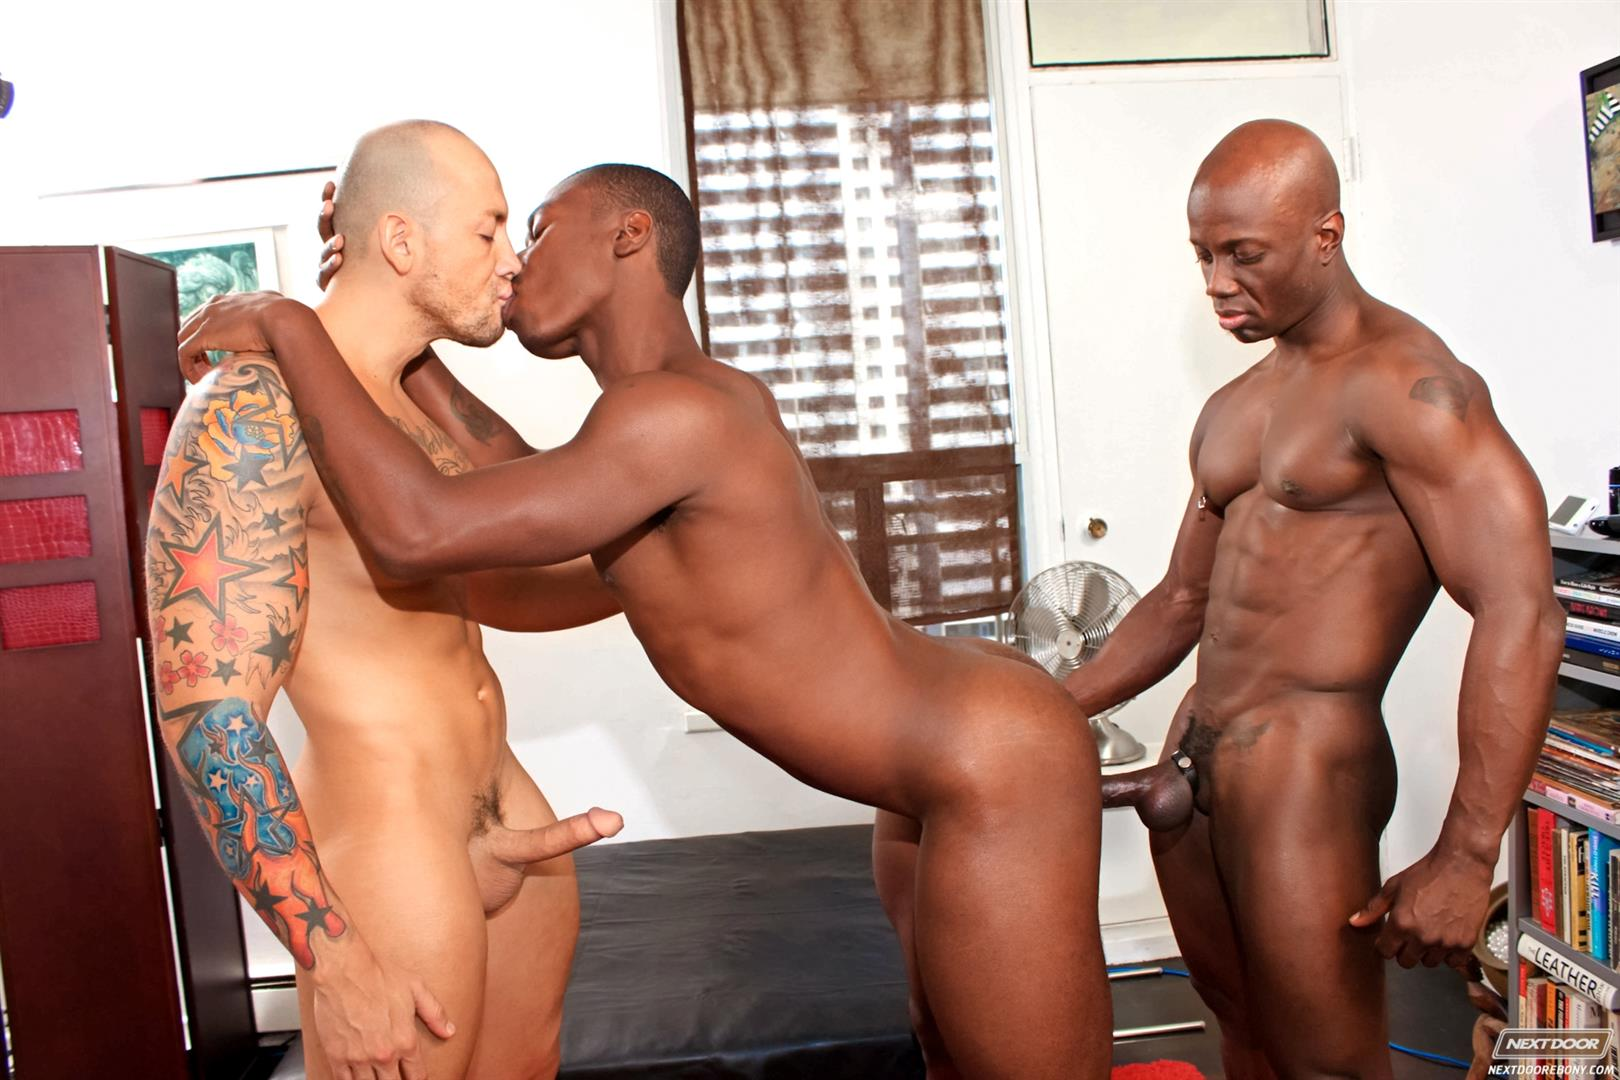 Next-Door-Ebony-Jordano-Santoro-and-Jay-Black-and-Damian-Brooks-Interracial-Gay-Fucking-Threeway-Amateur-Gay-Porn-12 Interracial Muscle Couple Picks Up A Black Muscle Stud In The Park